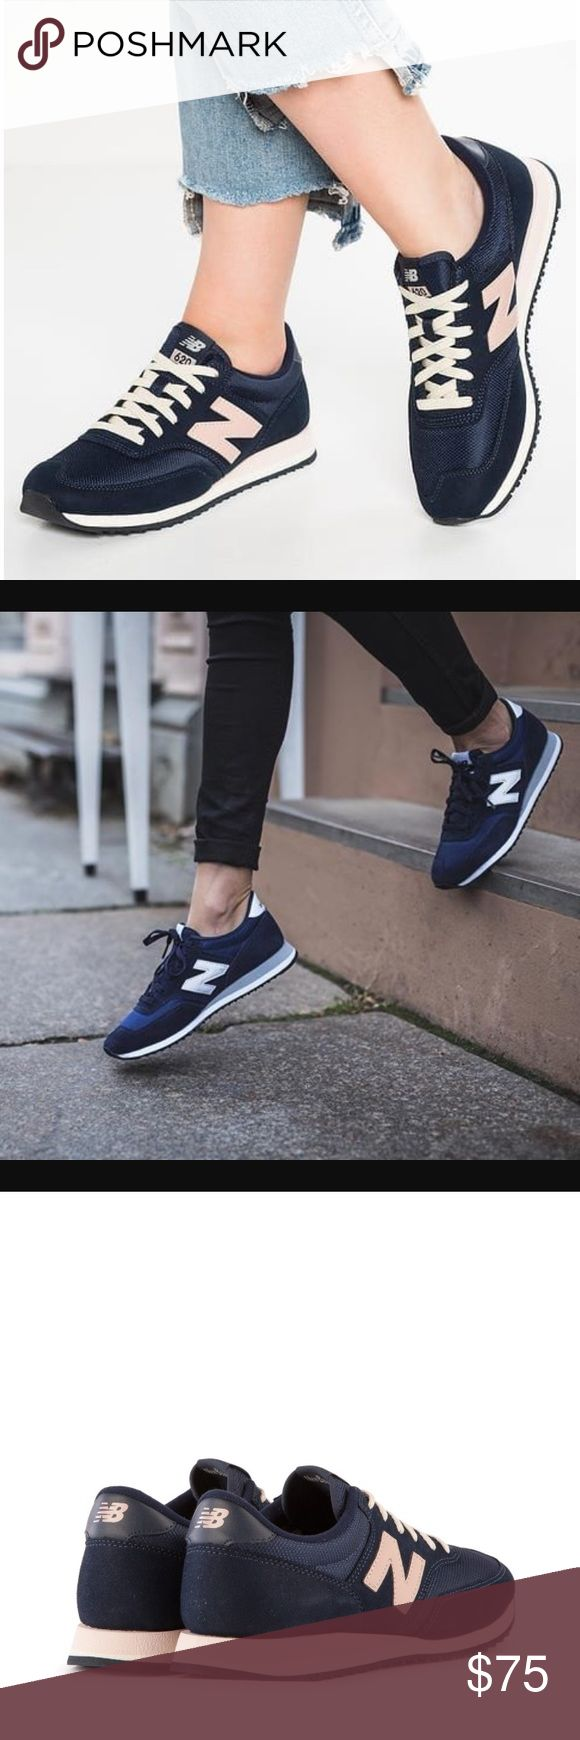 New balance navy 620 pink sneakers j . crew In stores now. Size 7. New Balance Shoes Athletic Shoes